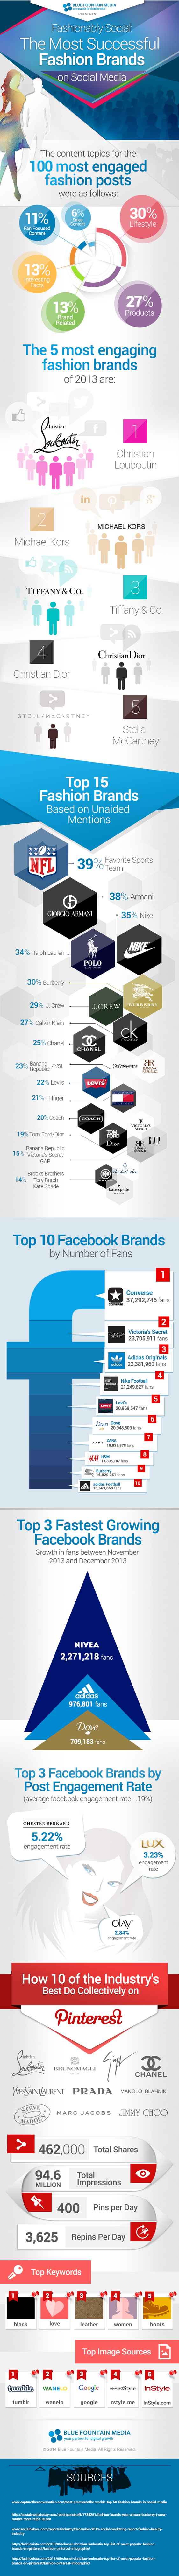 Fashionably Social: The Most Successful Fashion Brands on Social Media